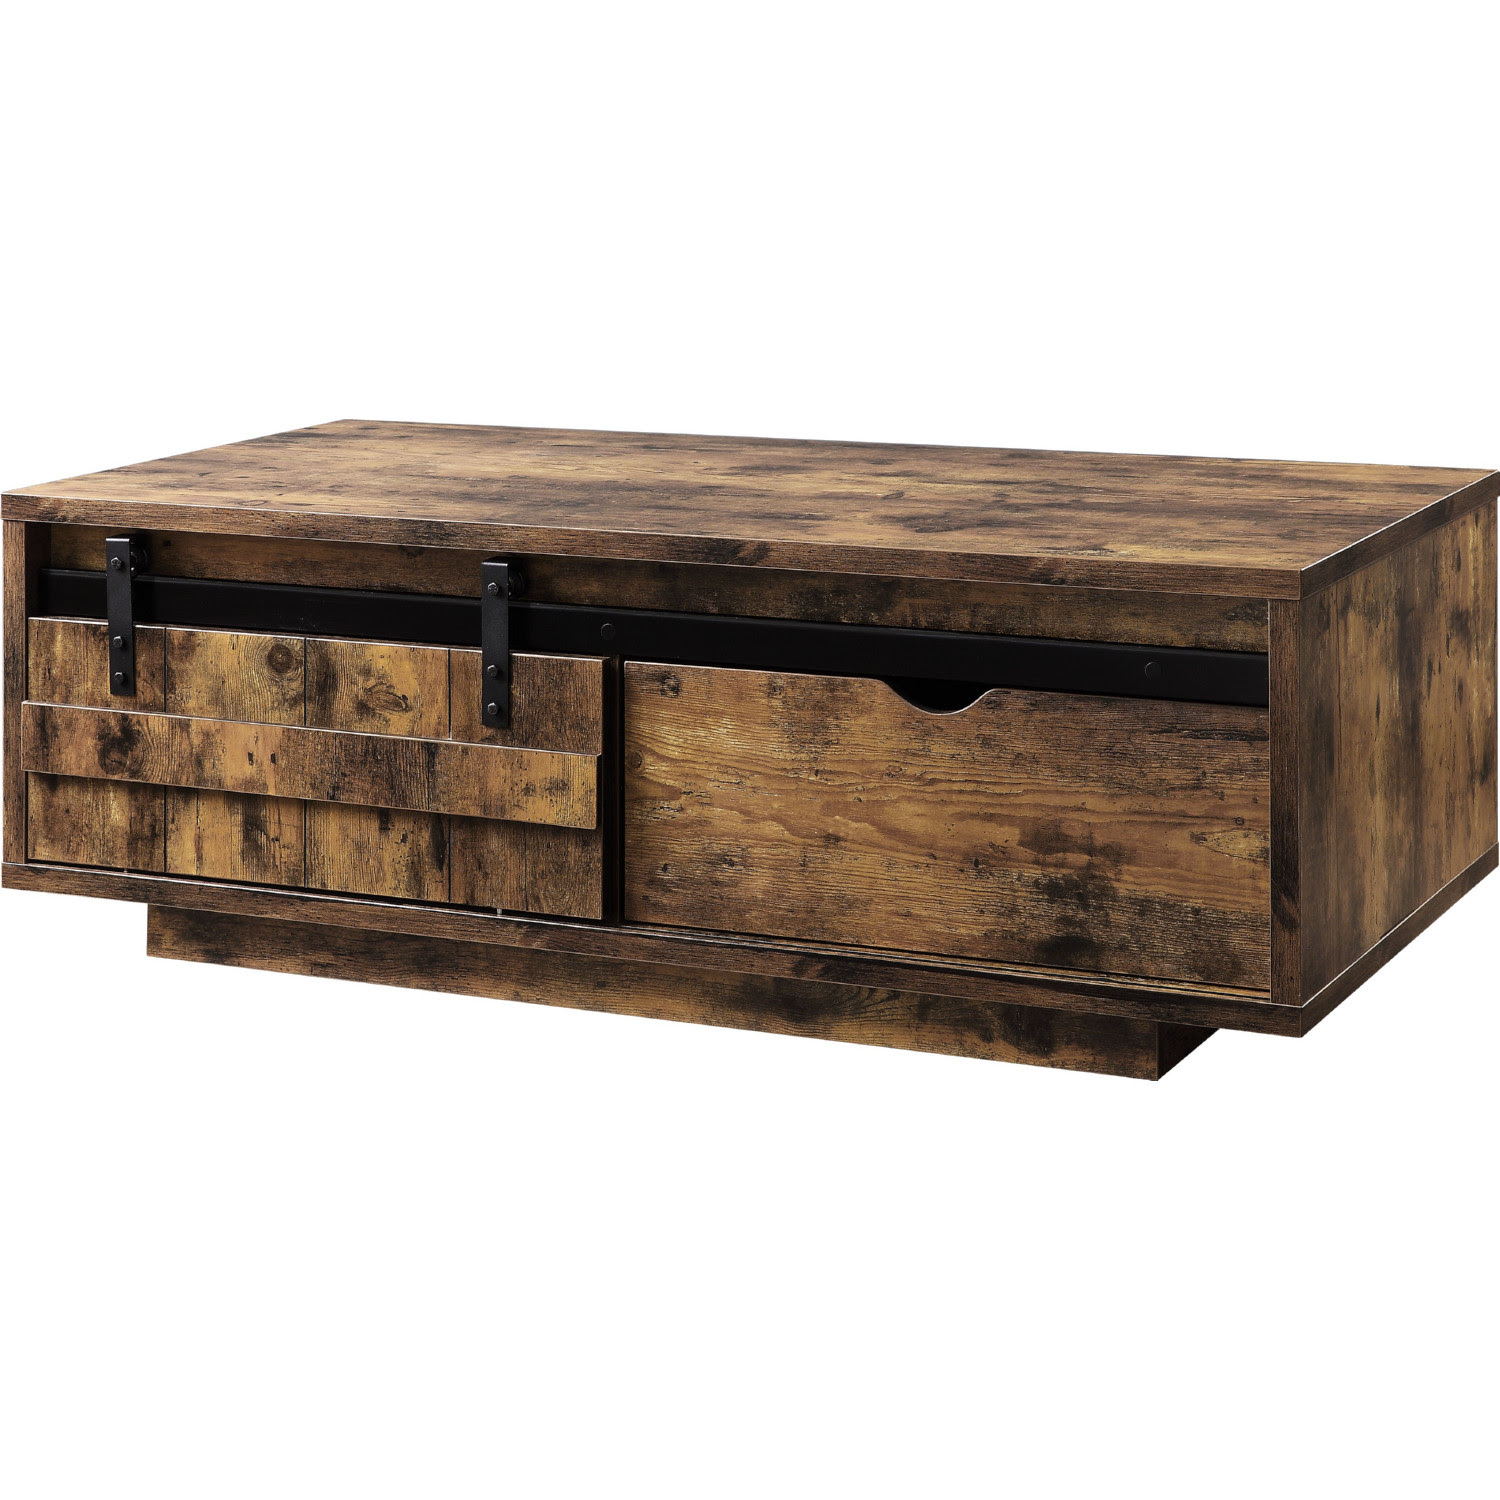 Acme 88040 Bellarosa Coffee Table In Rustic Oak